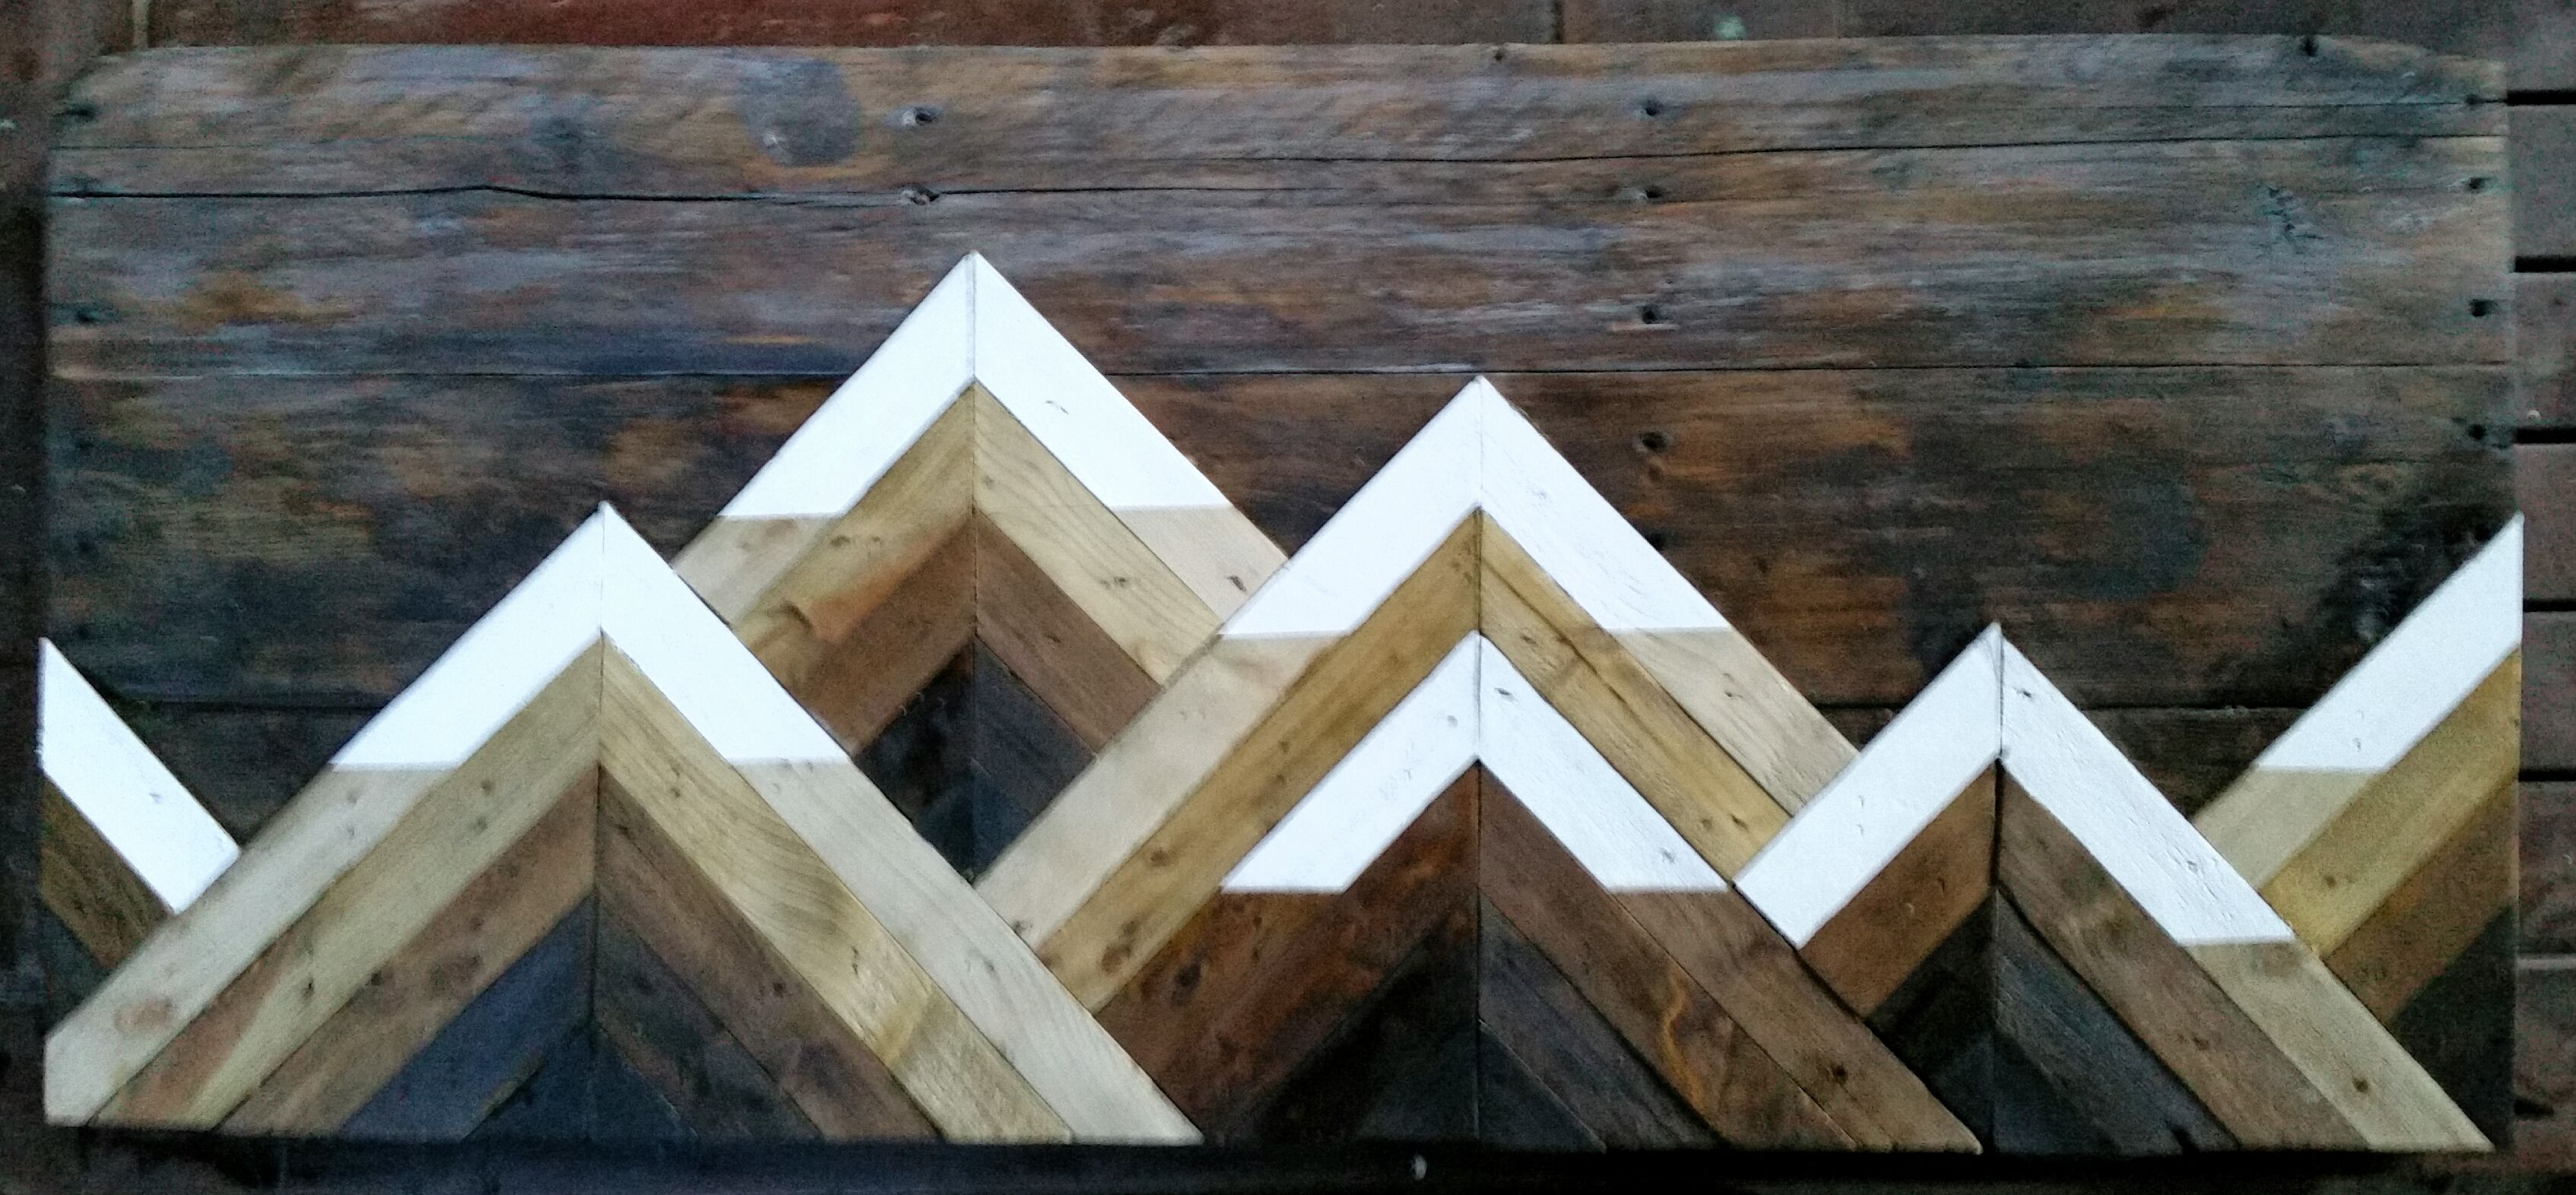 3d Geometric Snow Topped Mountain Range Using Wood Stains Reclaimed